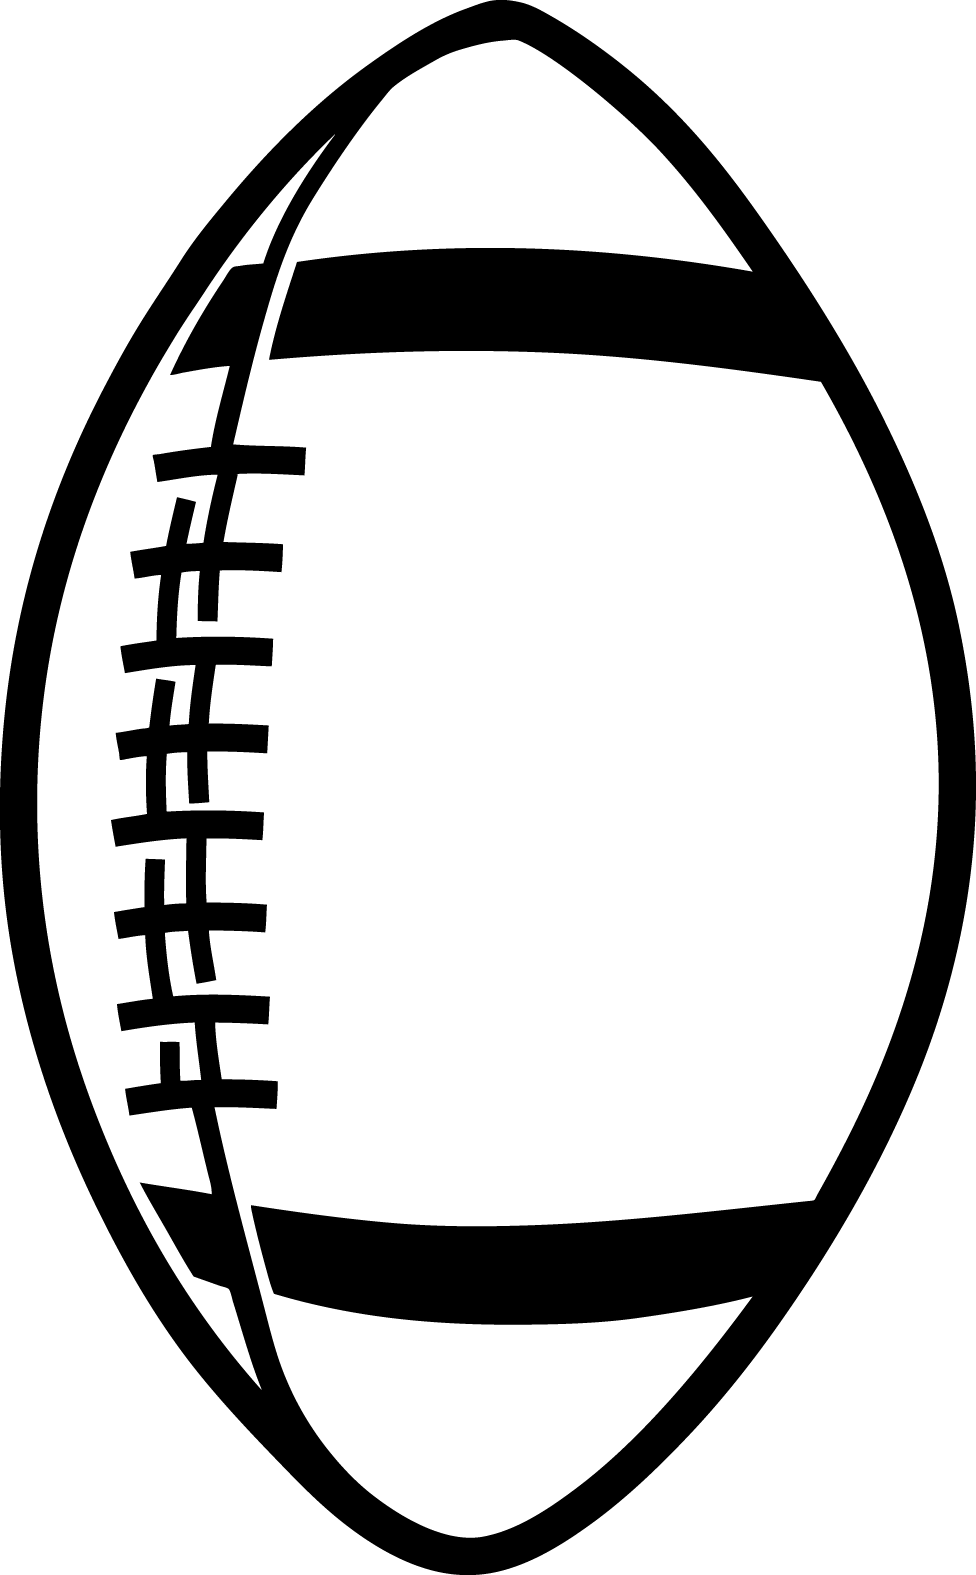 collection of logo. White clipart football